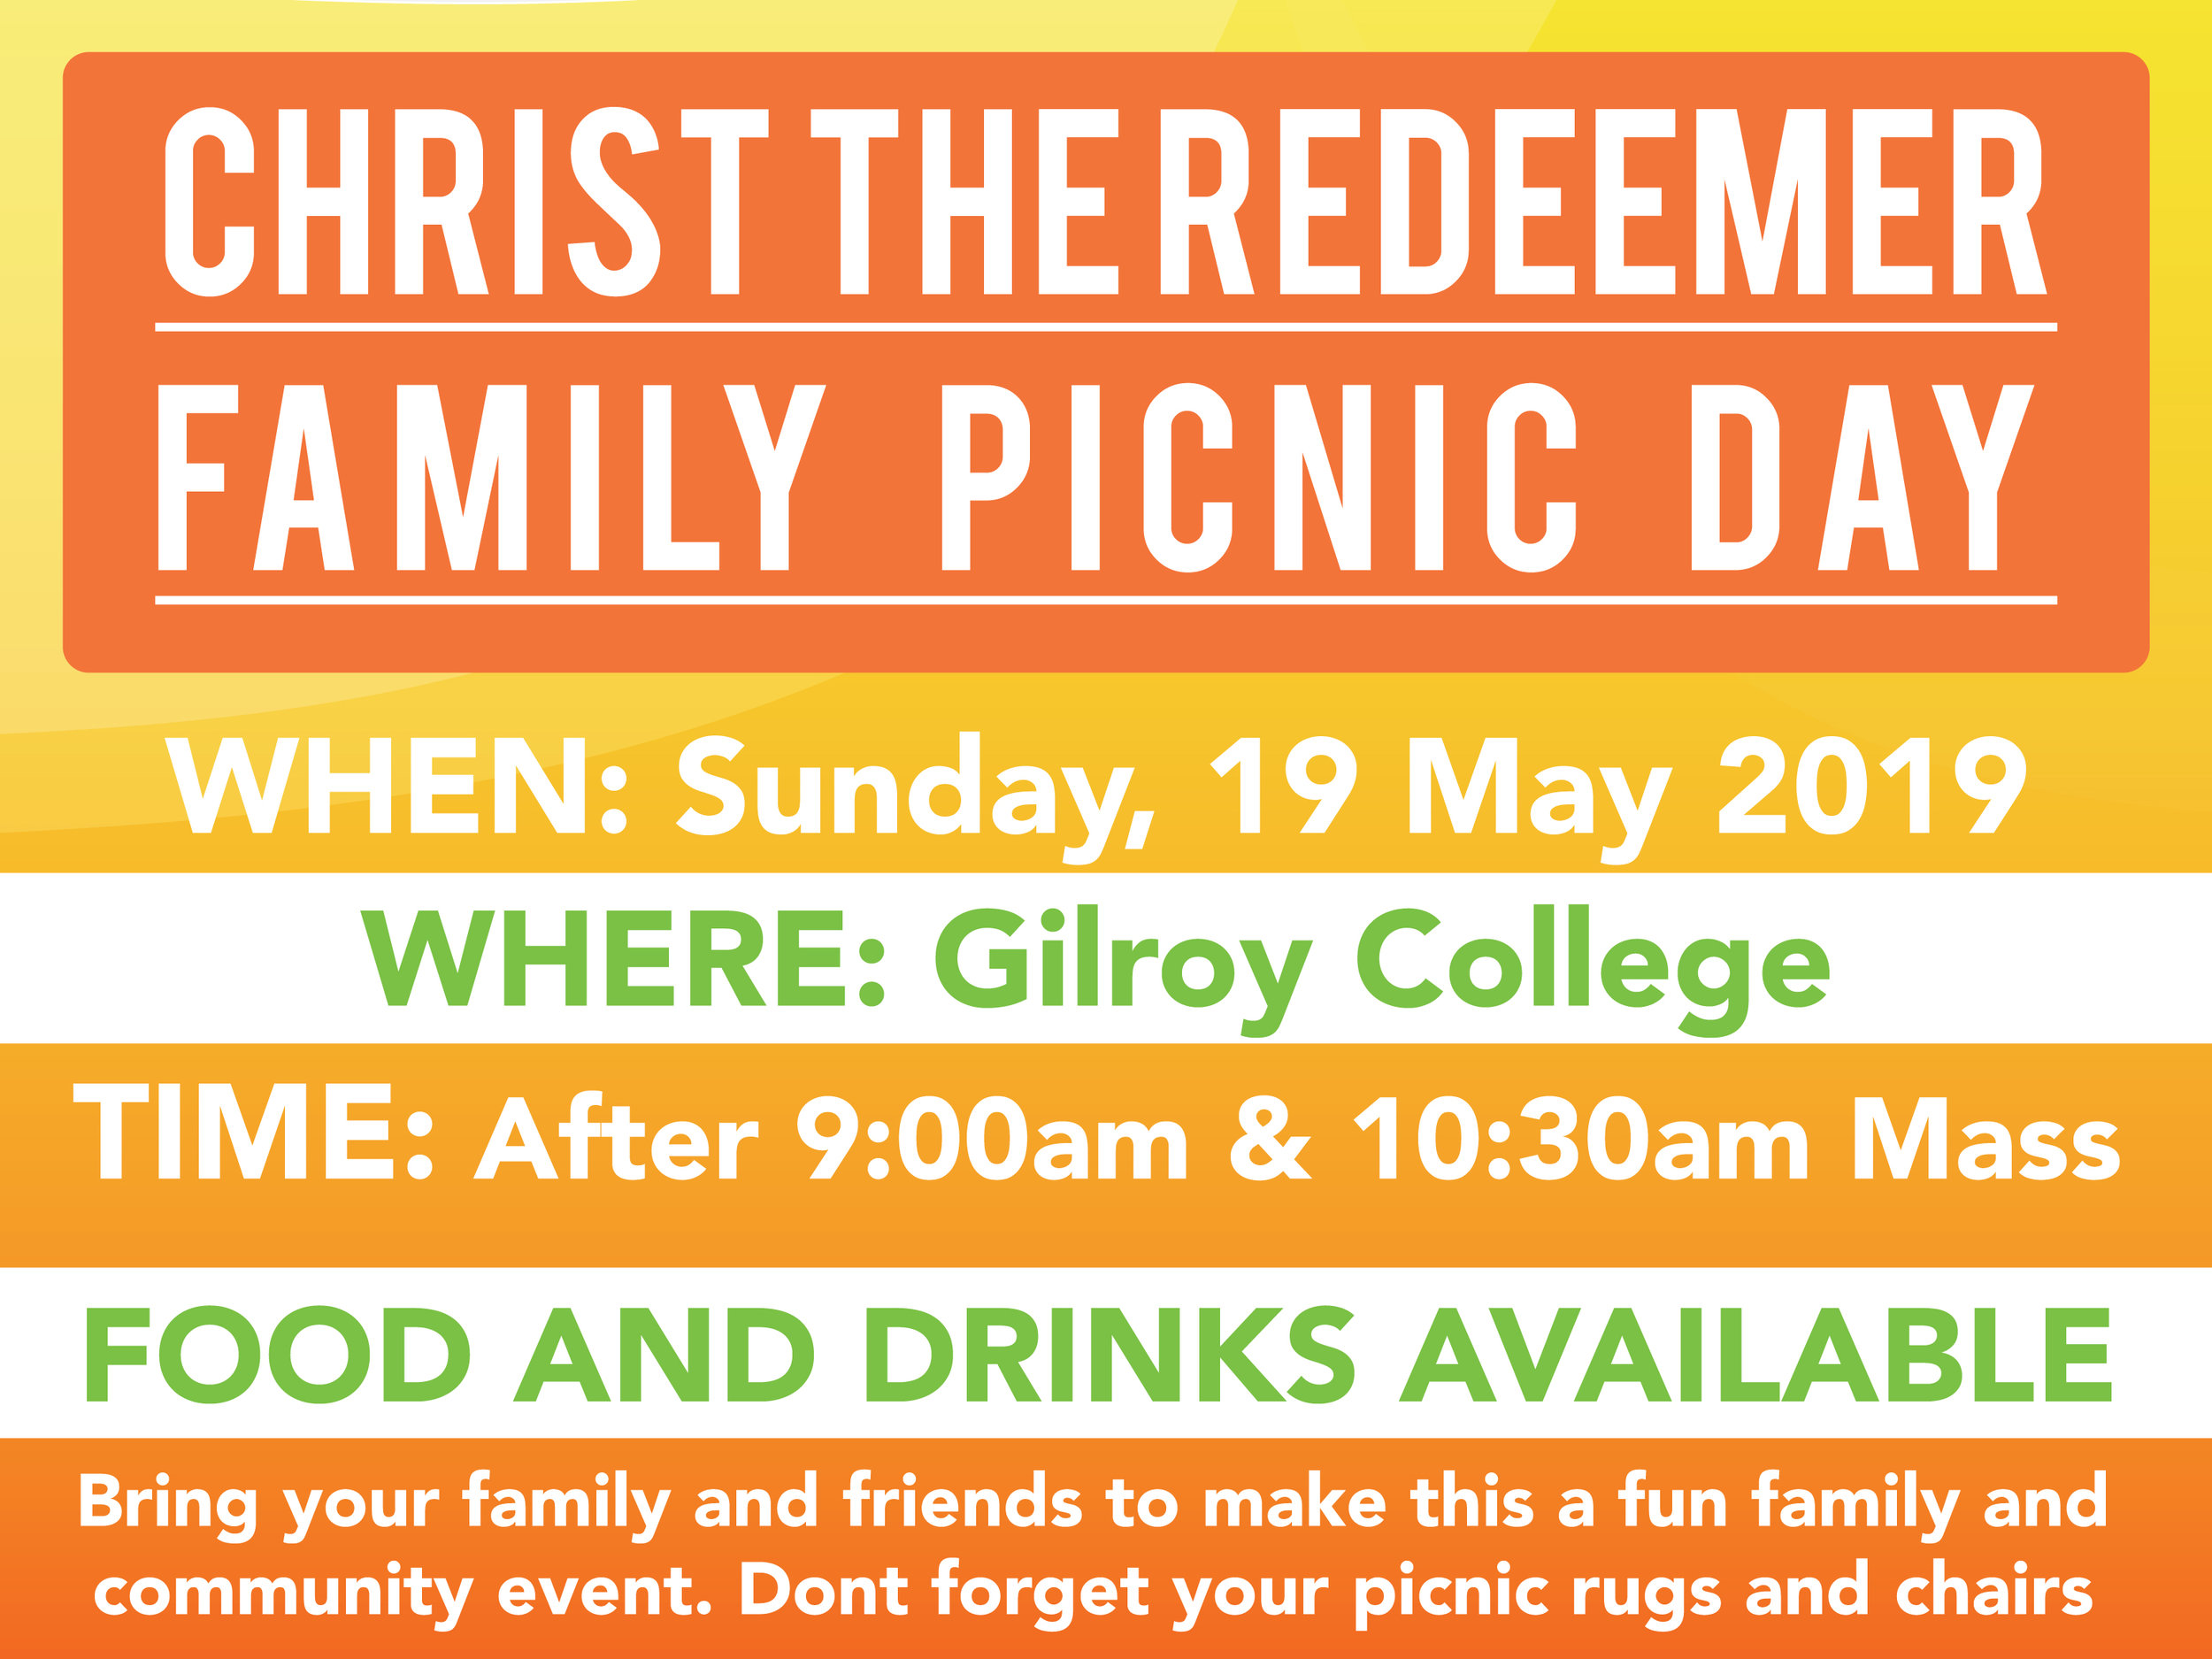 MAY---CTR-picnic-day-PP-slide----2019.jpg